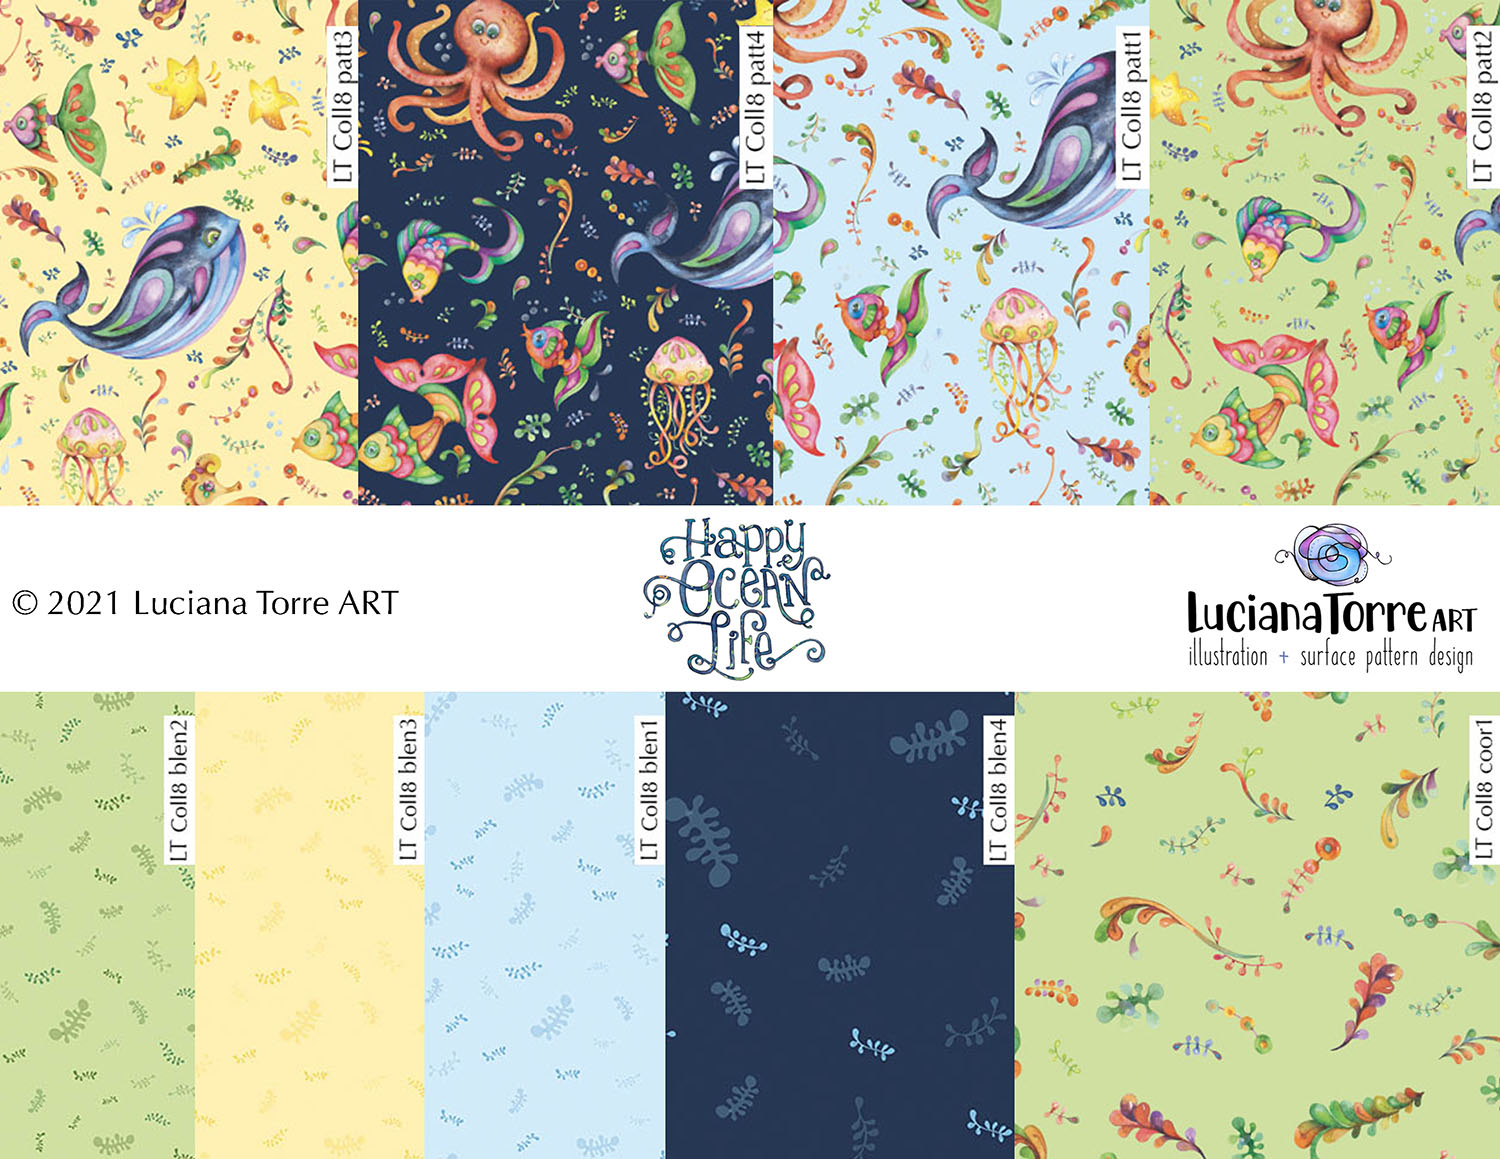 Luciana Torre Art surface pattern design collection